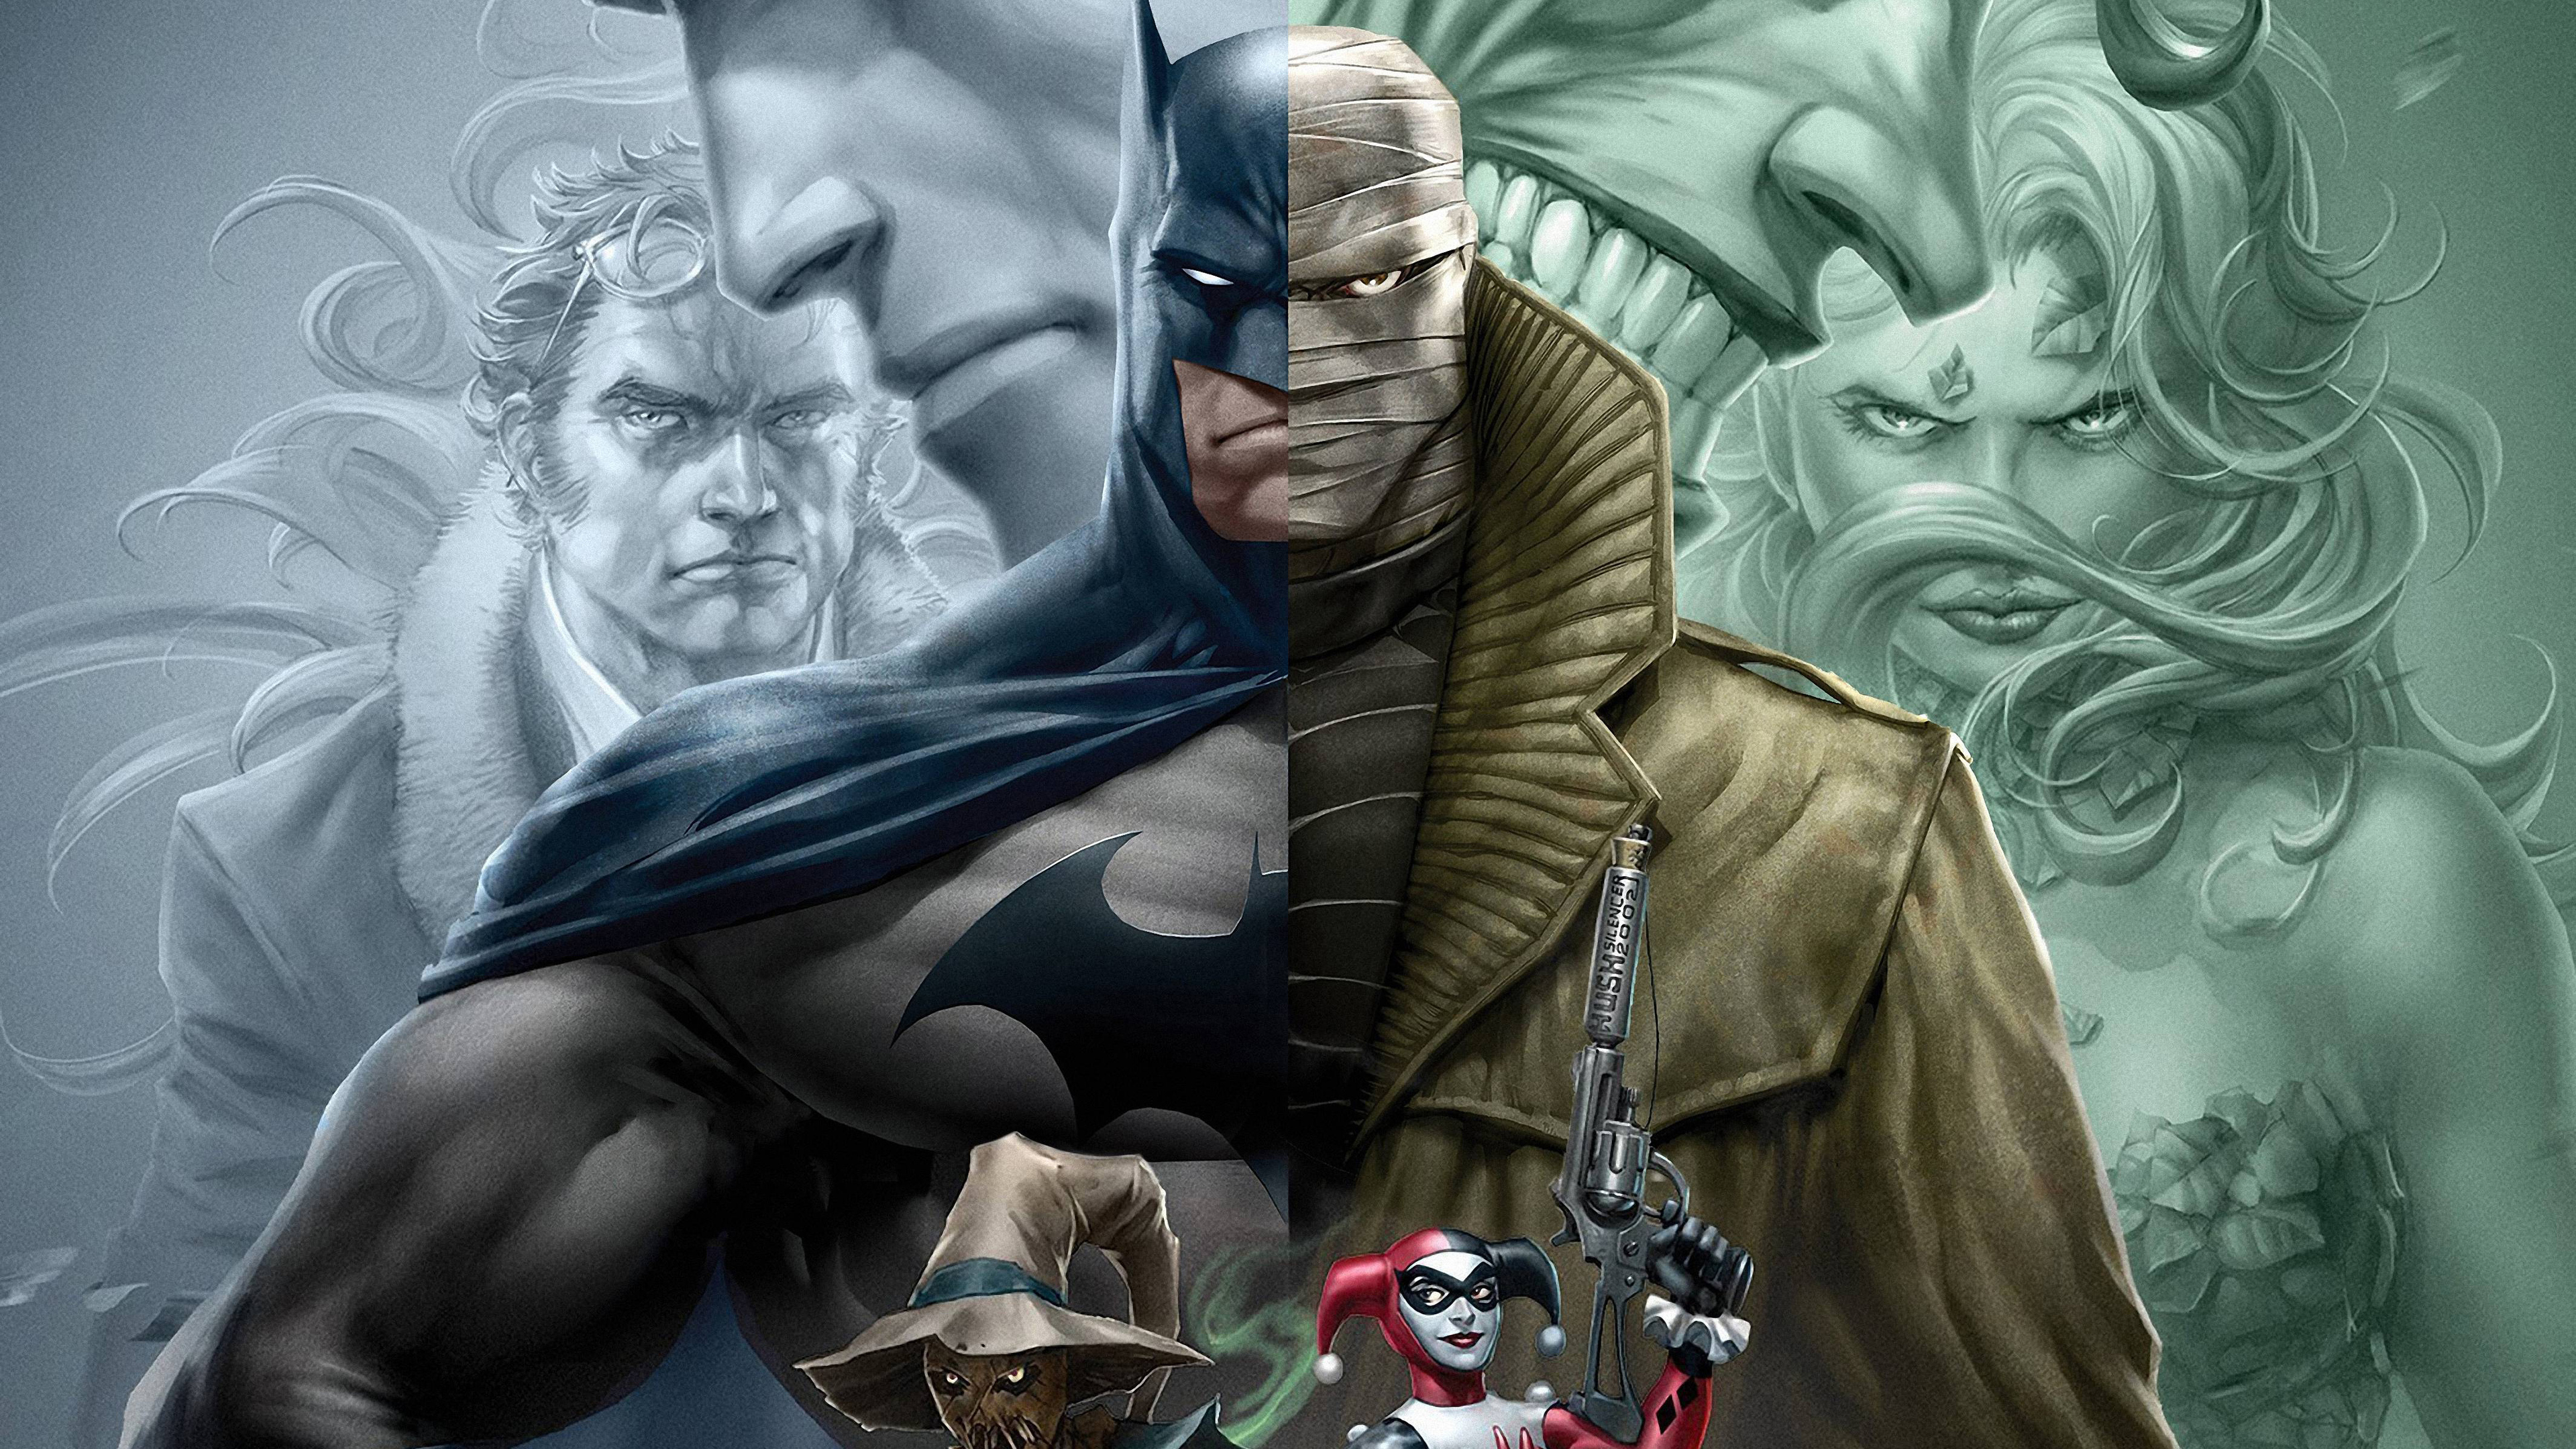 batman hush 1565054200 - Batman Hush - superheroes wallpapers, hd-wallpapers, digital art wallpapers, batman wallpapers, artwork wallpapers, 4k-wallpapers